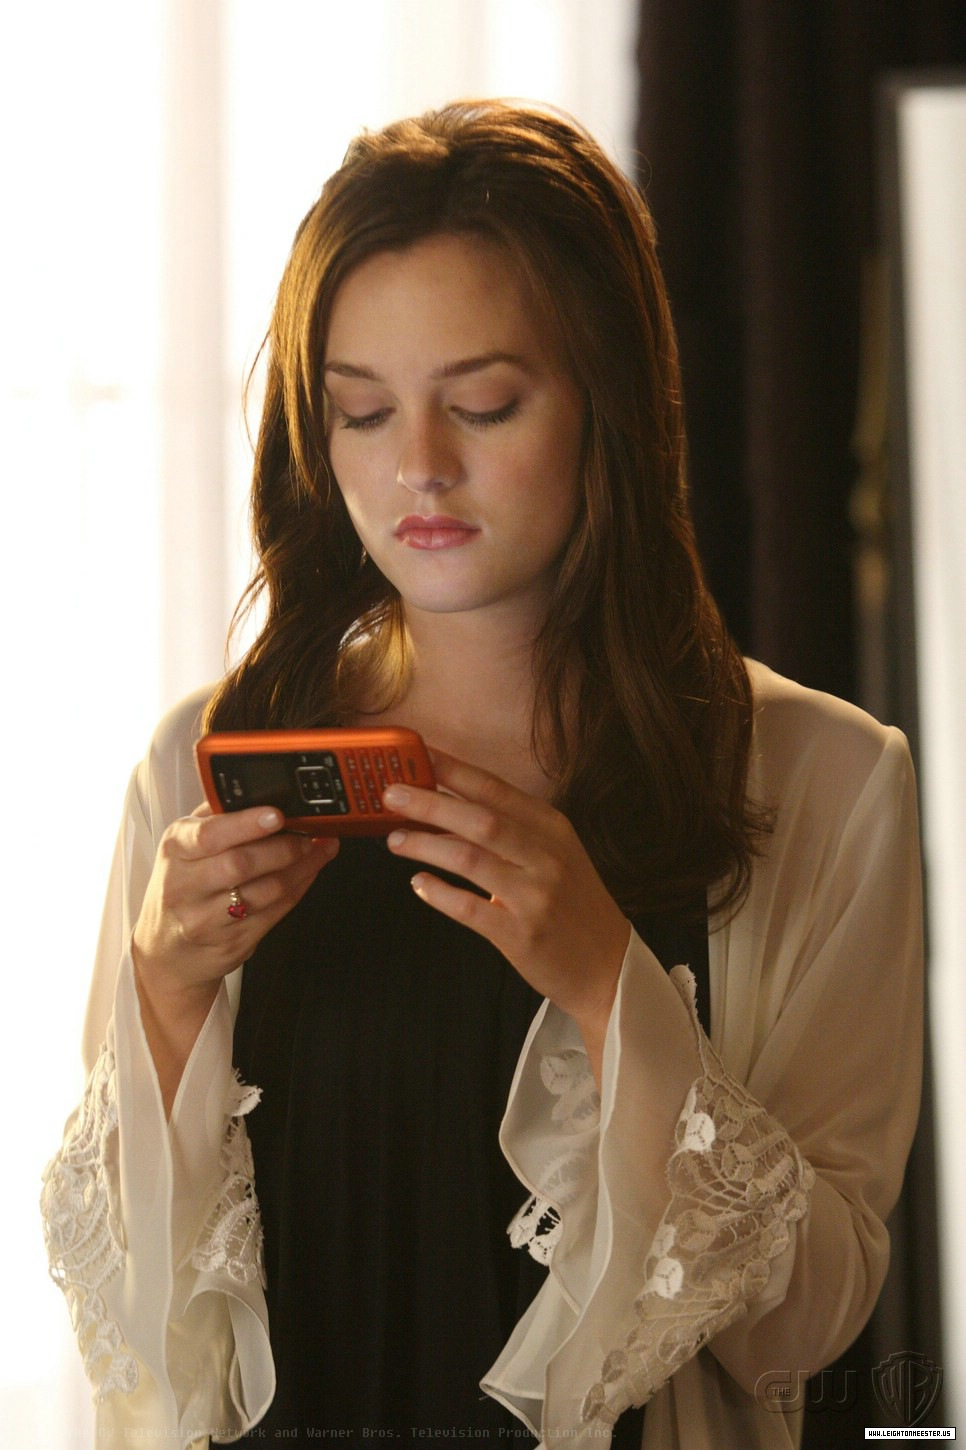 image Leighton meester north shore